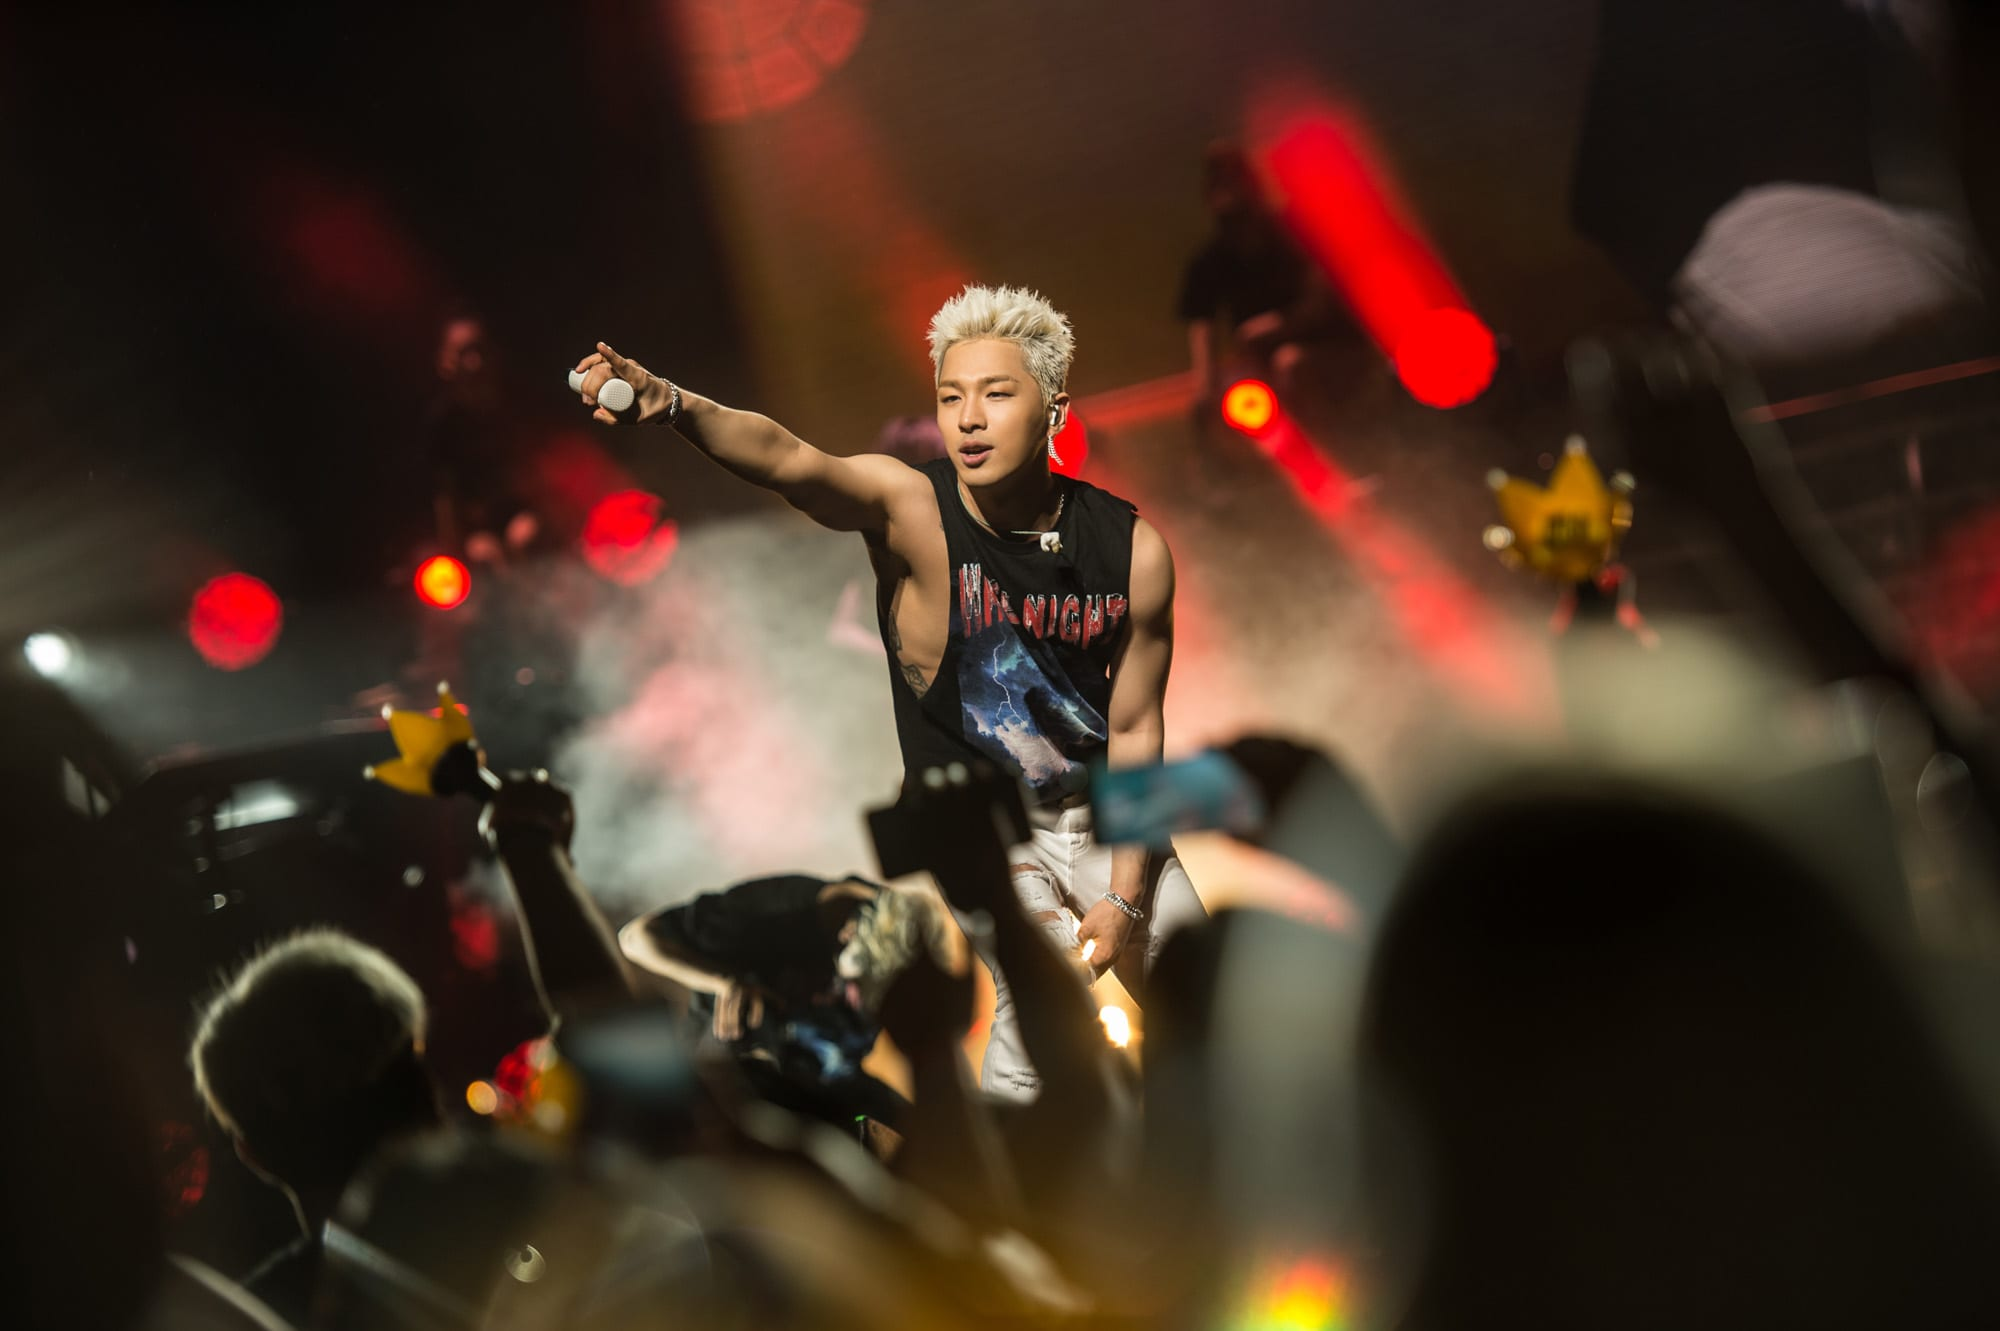 WTK Review: Taeyang Rocks The Stage For First U.S. Solo Tour